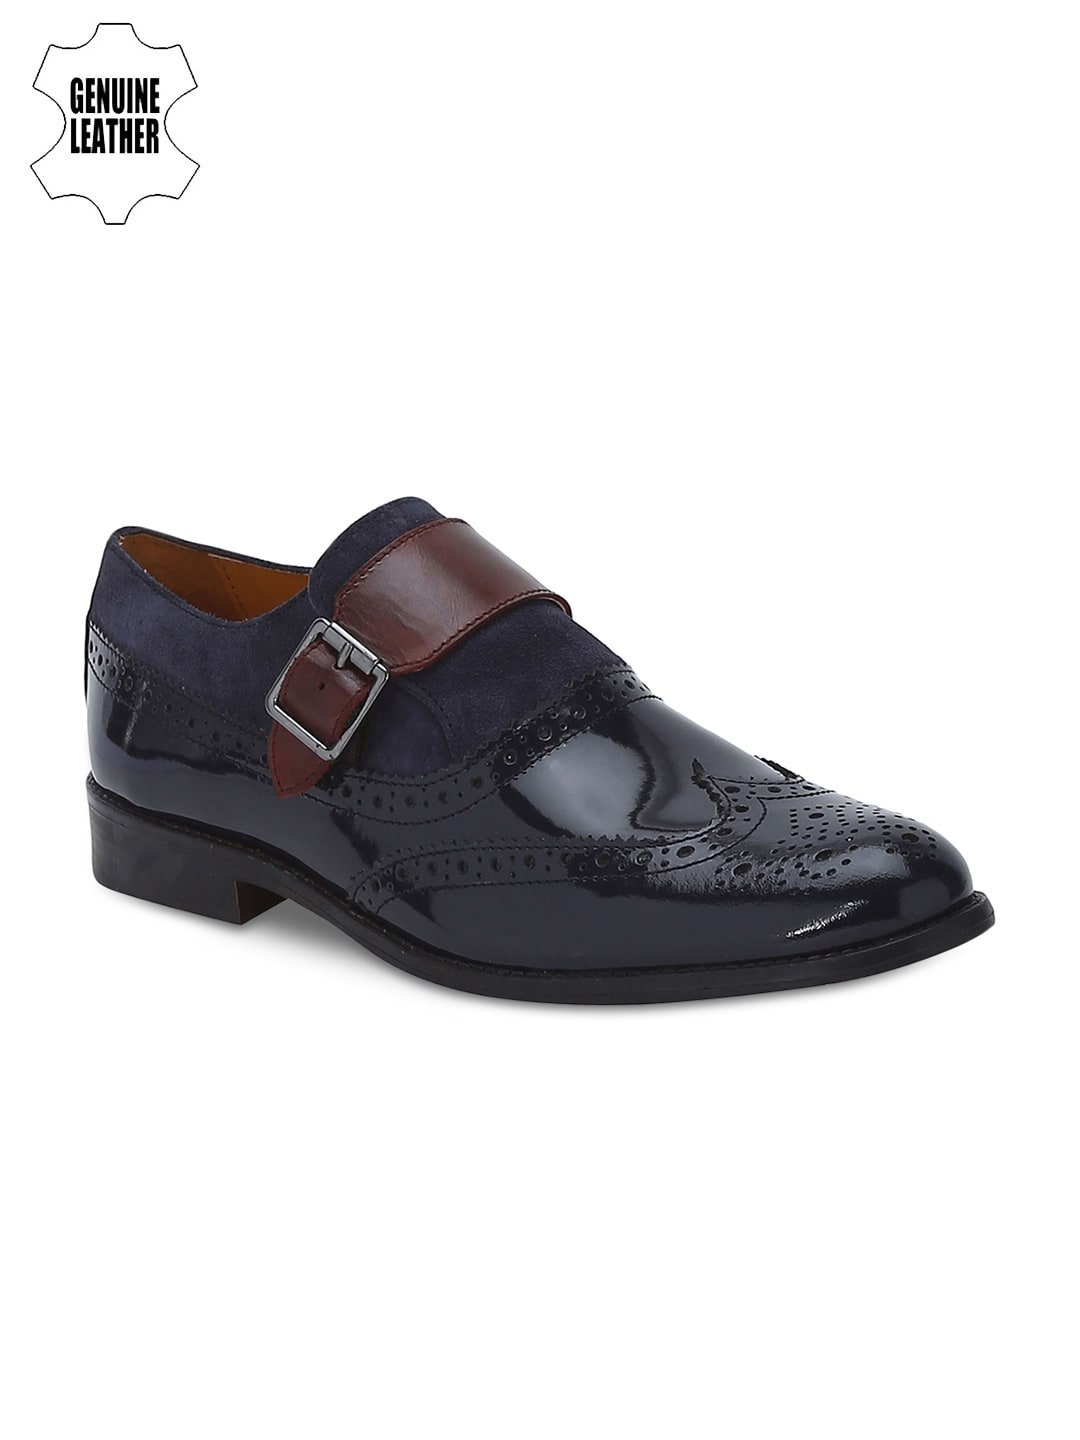 87f528cab06cb4 Casual Shoes For Men - Buy Casual   Flat Shoes For Men